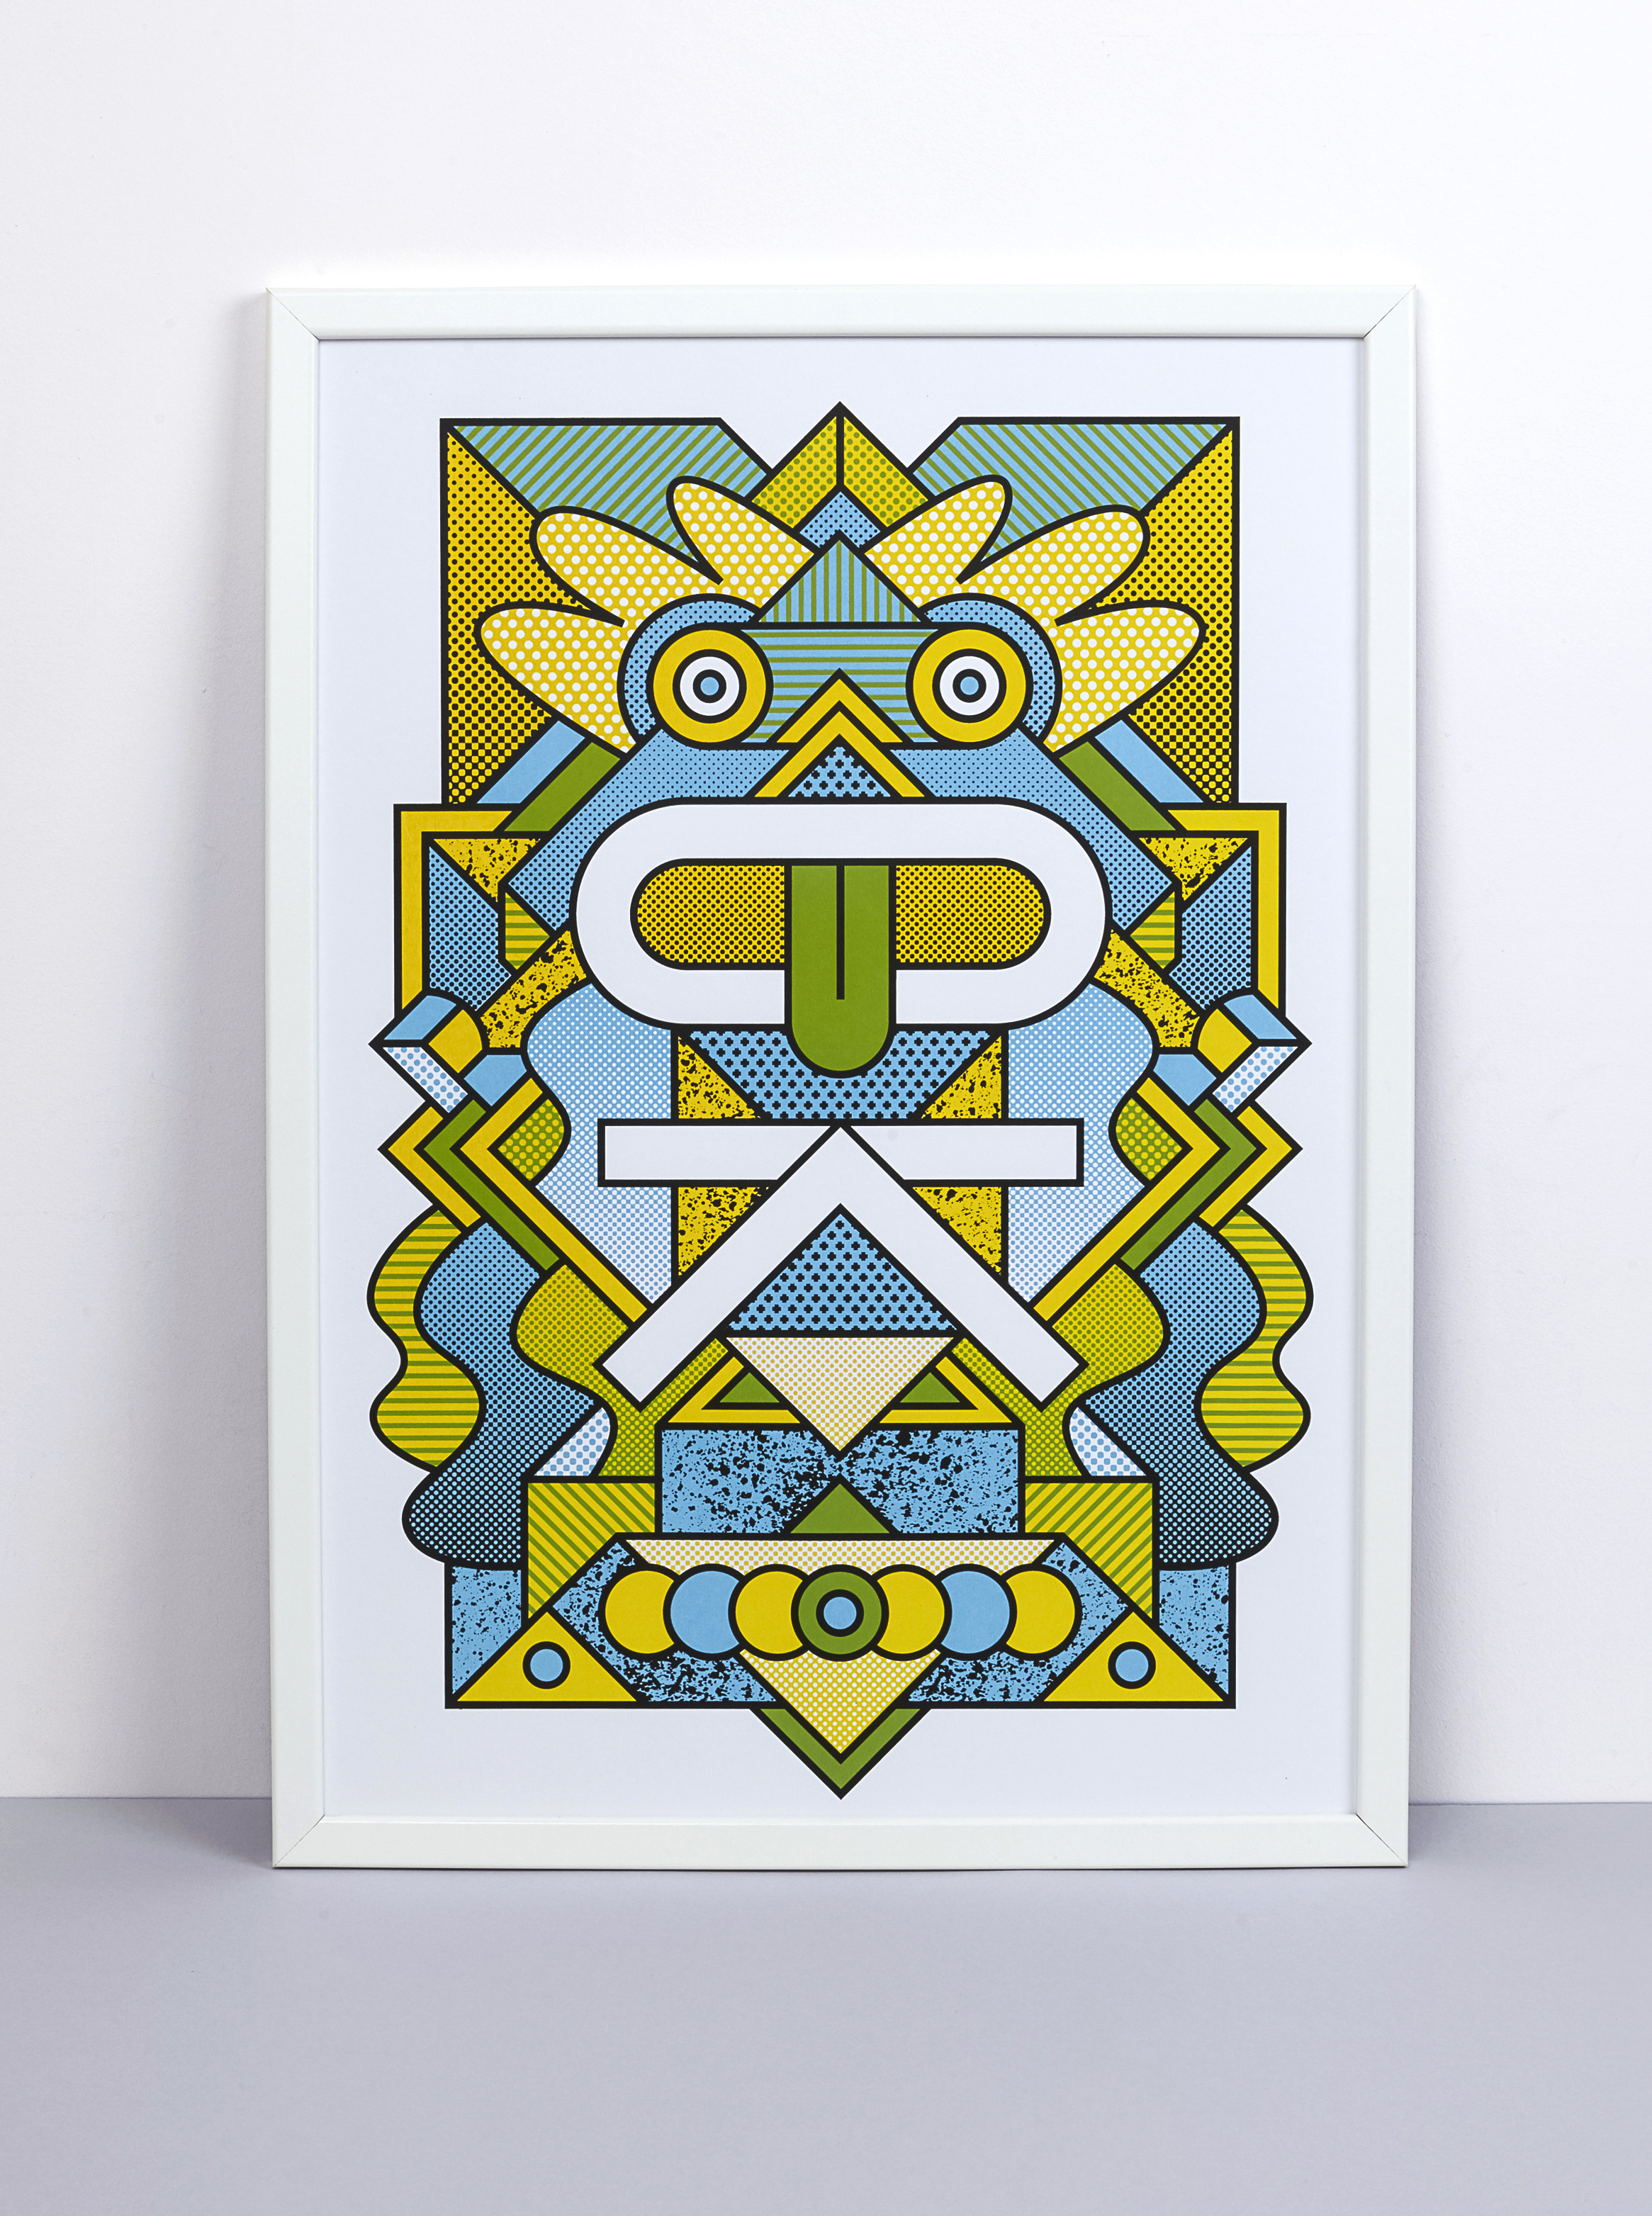 Supermundane Limited Edition Screen Print - OK